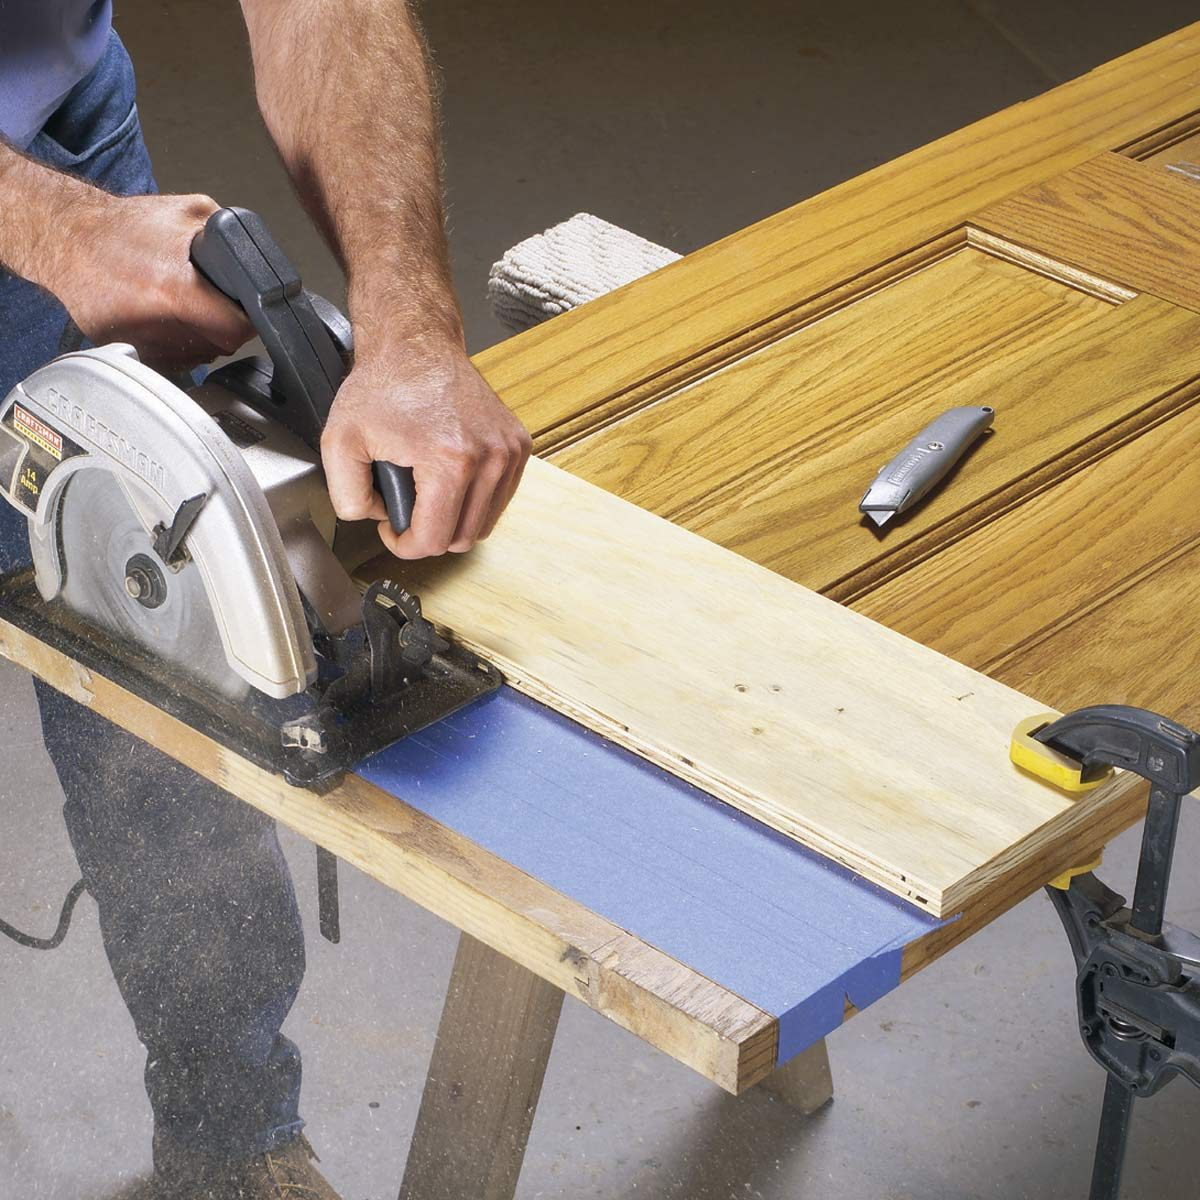 How To Cut Off Wood Door Bottoms Family Handyman The